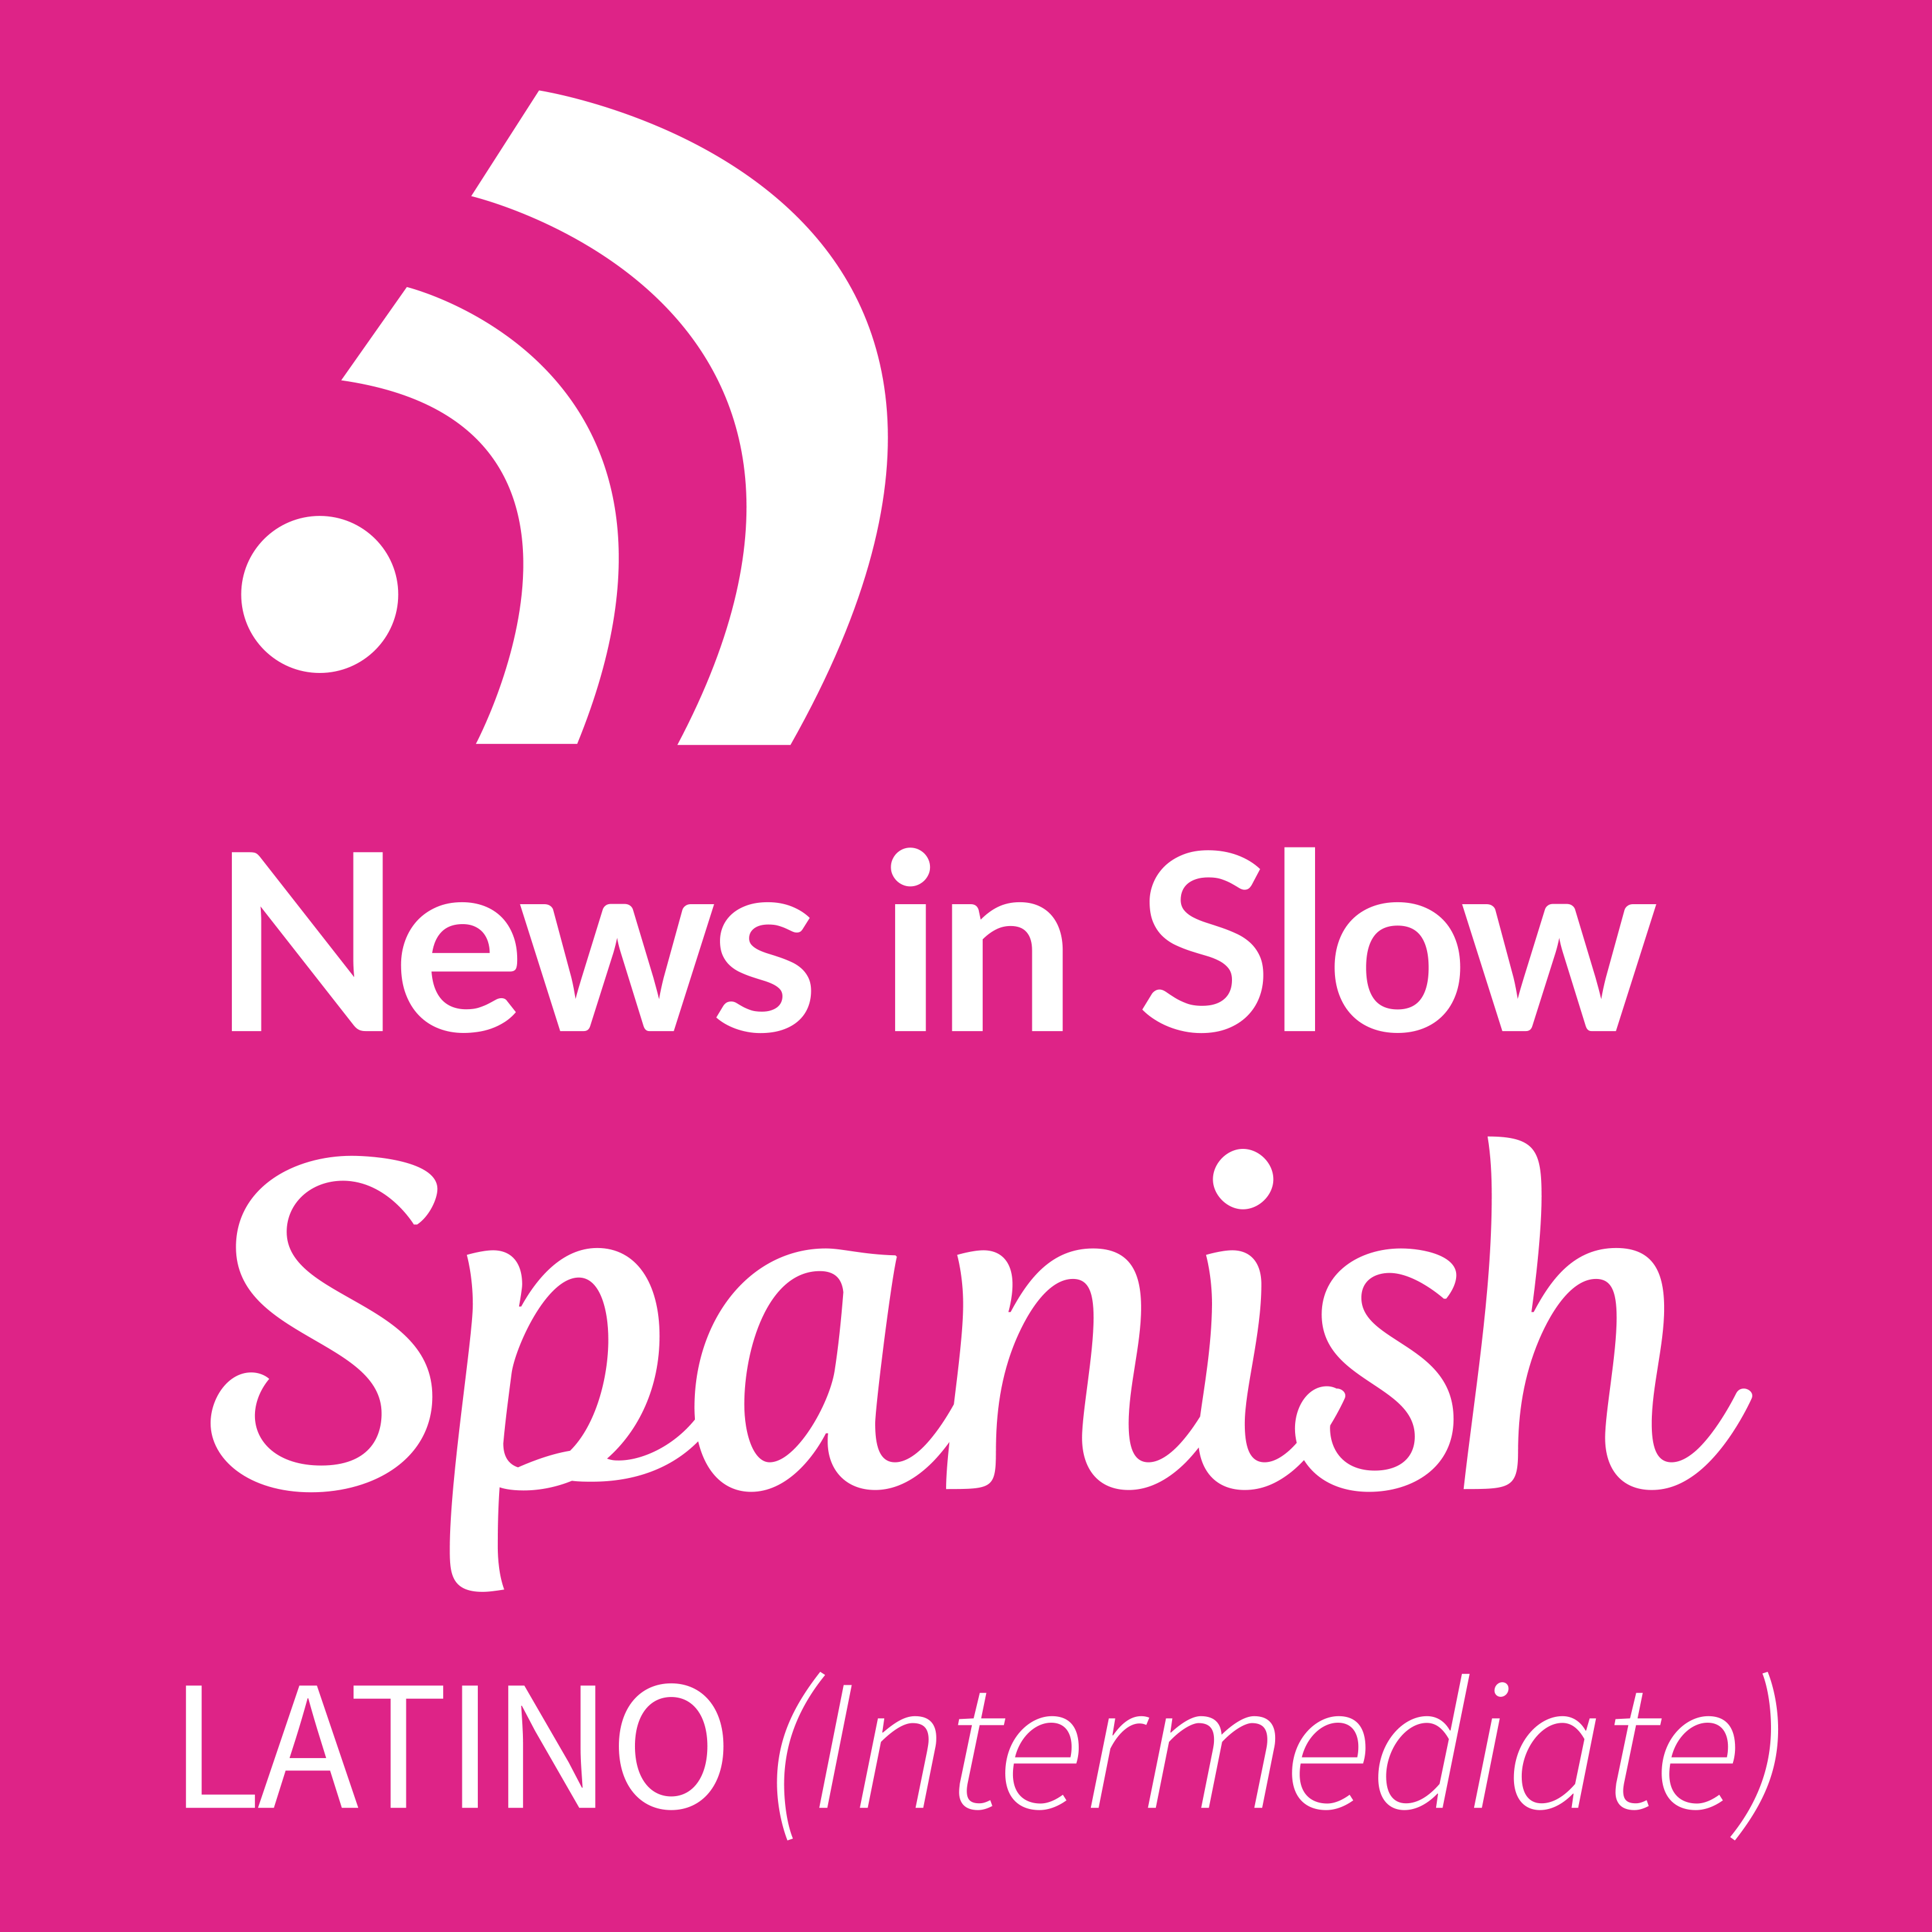 News in Slow Spanish Latino - # 154 - Spanish grammar, news and expressions